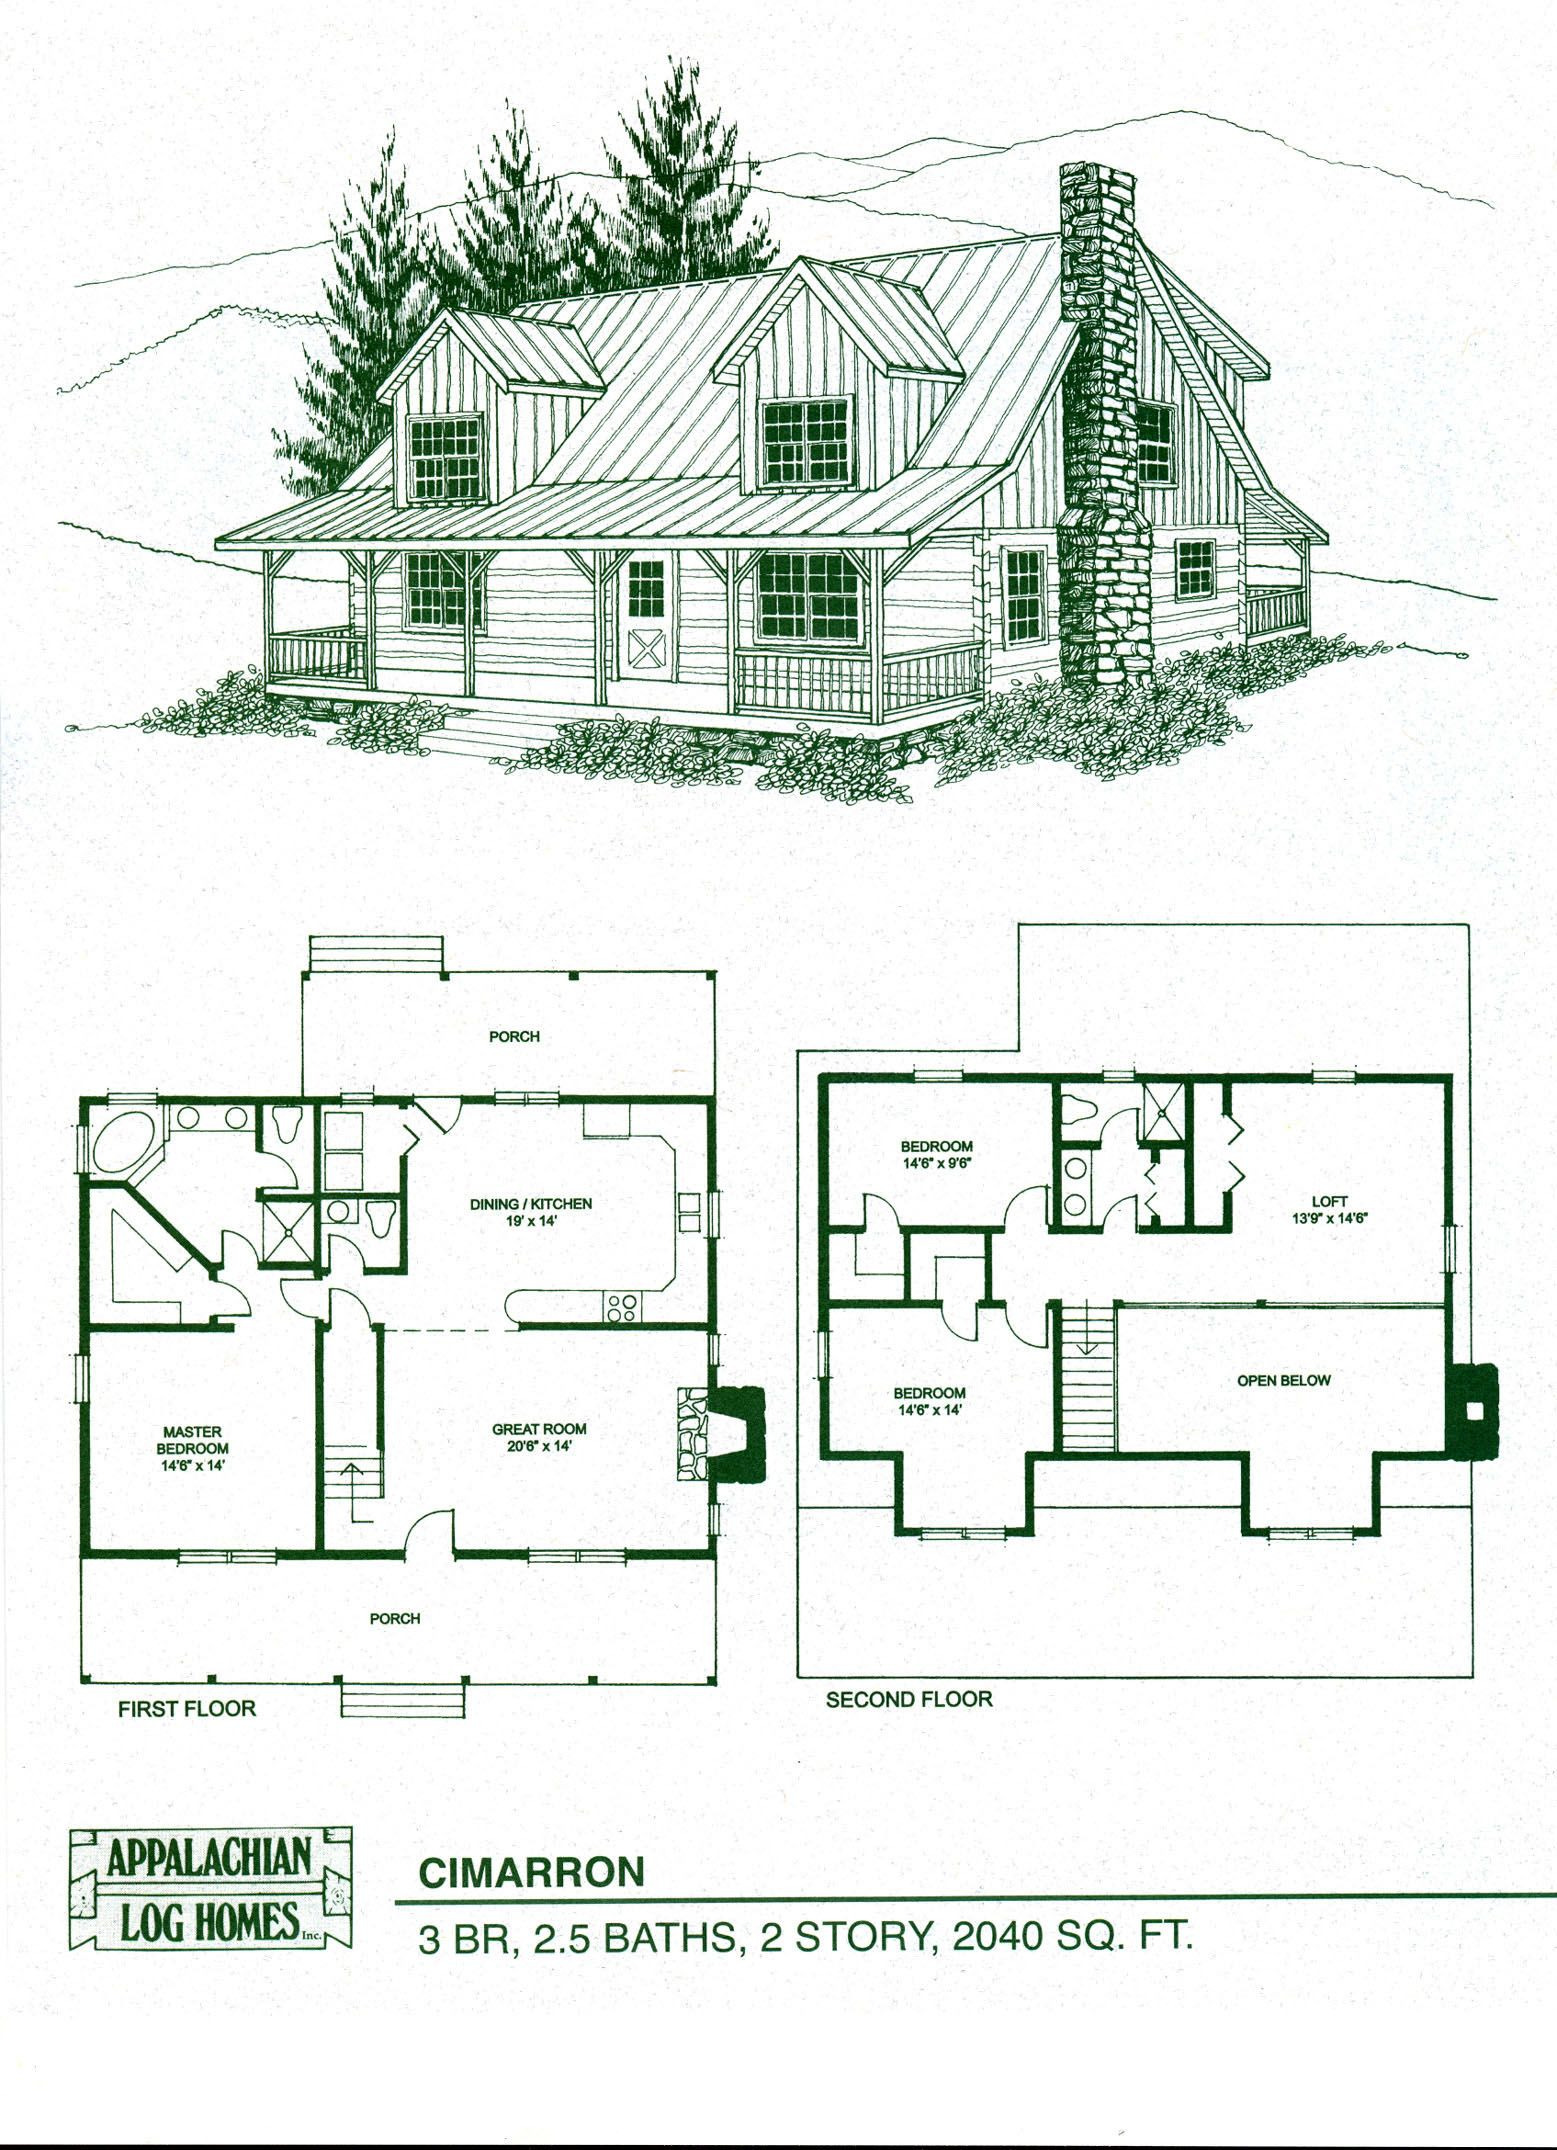 Log House Plans with Photos Elegant Latest News From Appalachian Log and Timber Homes